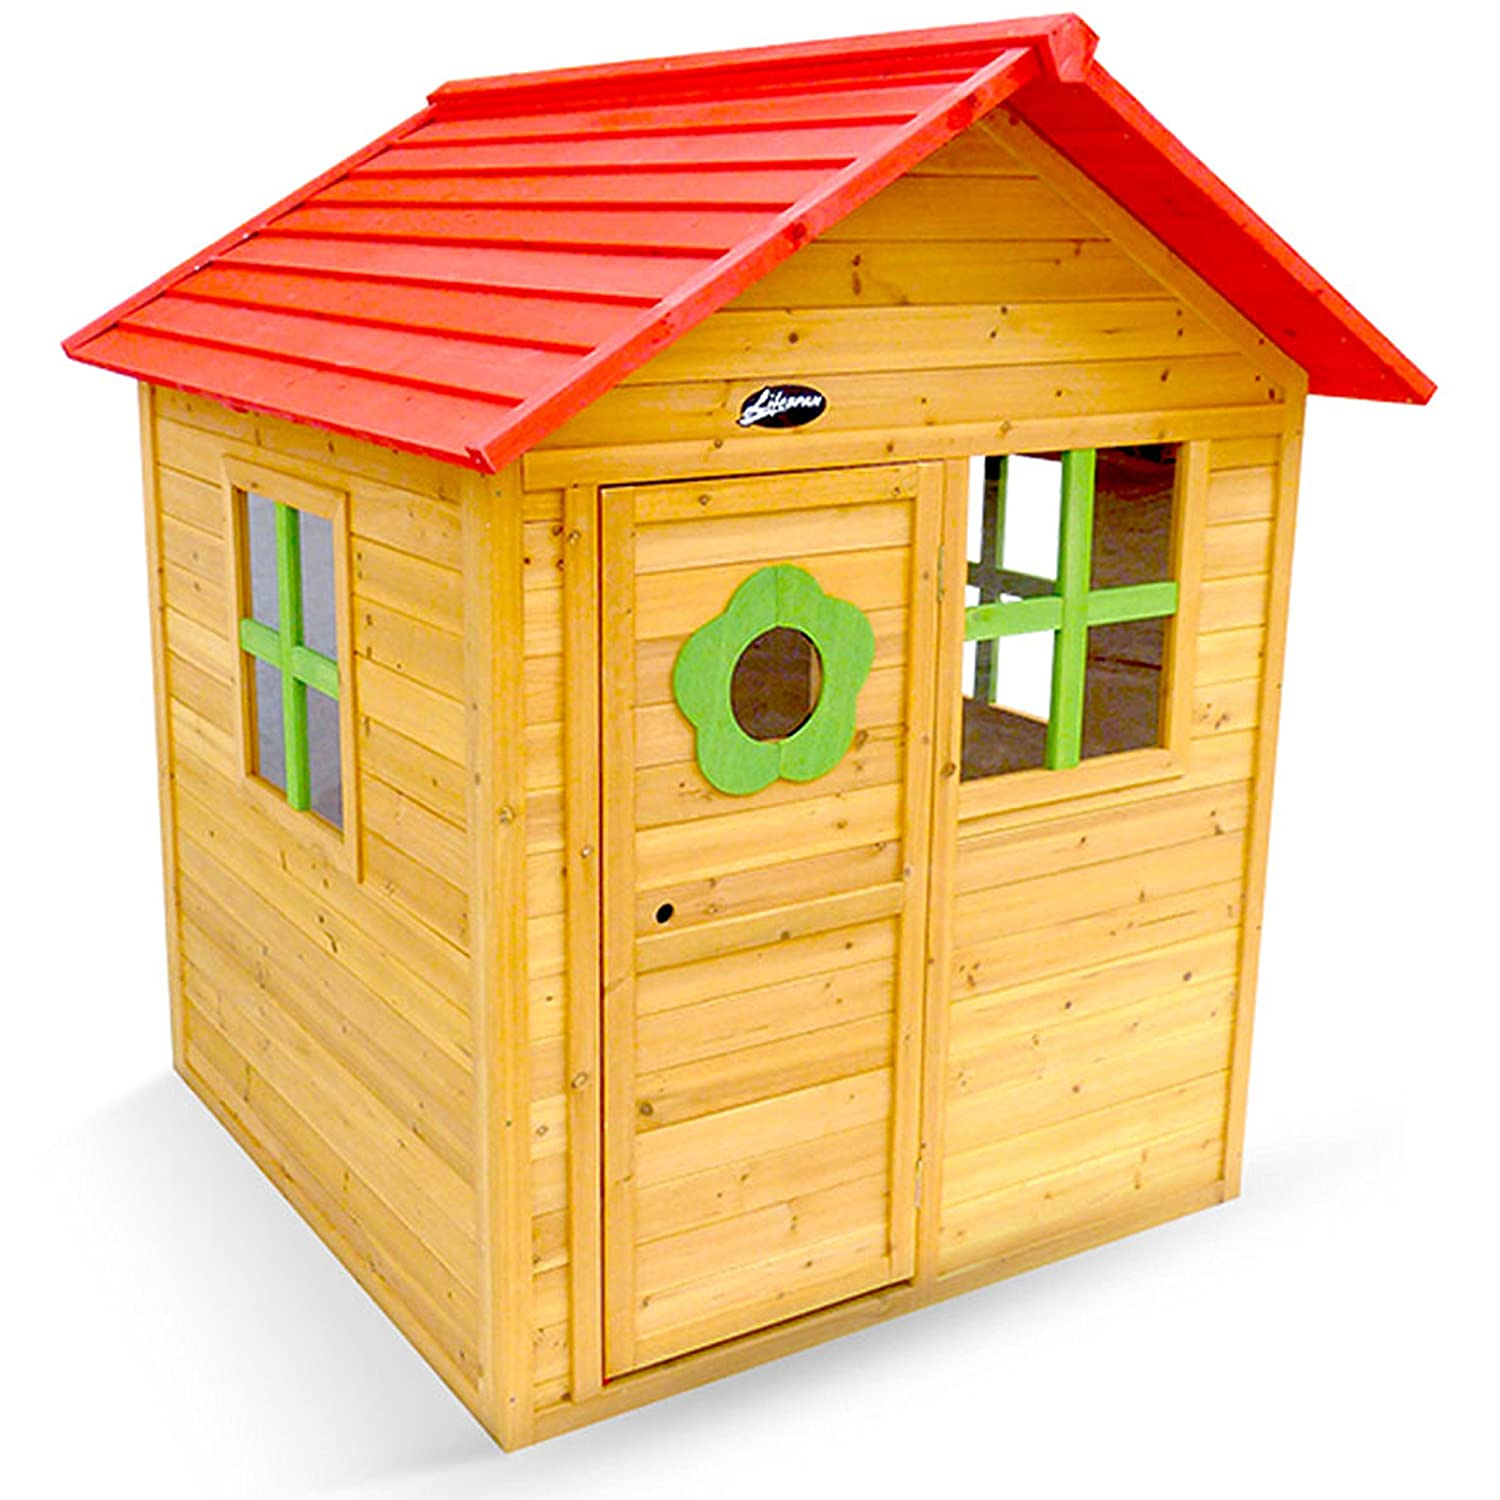 amazon com outward play badger cubby wood playhouse toys u0026 games